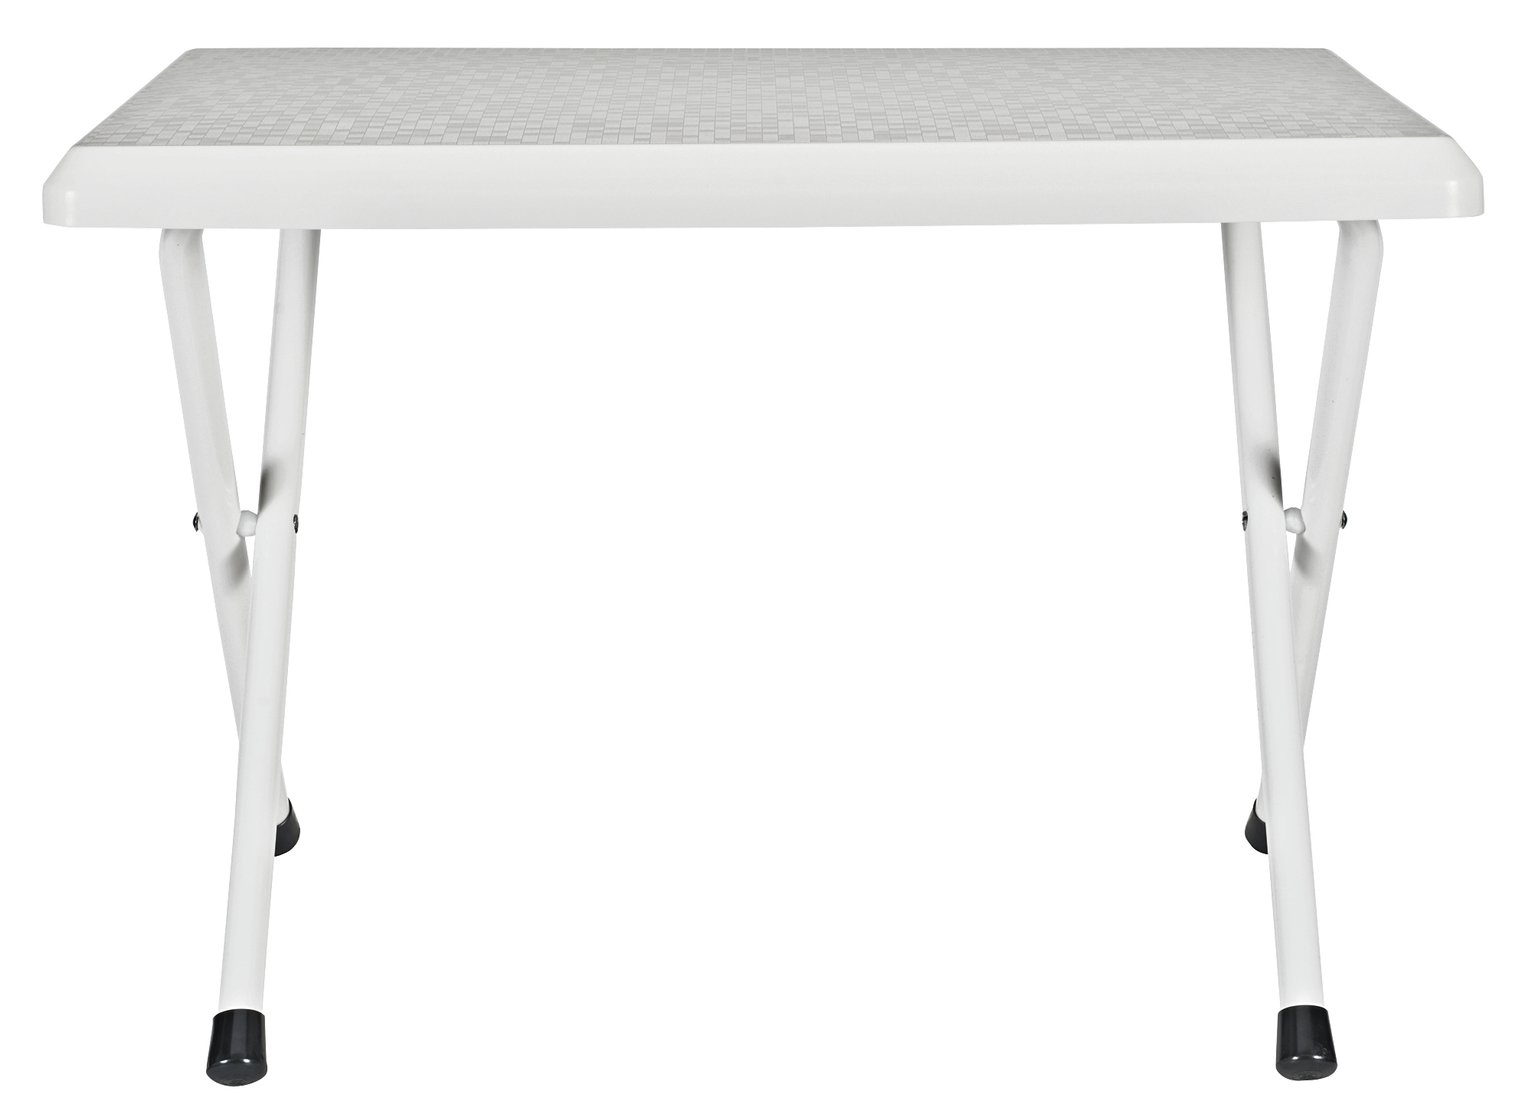 Image of Bica Low Folding Camping Table